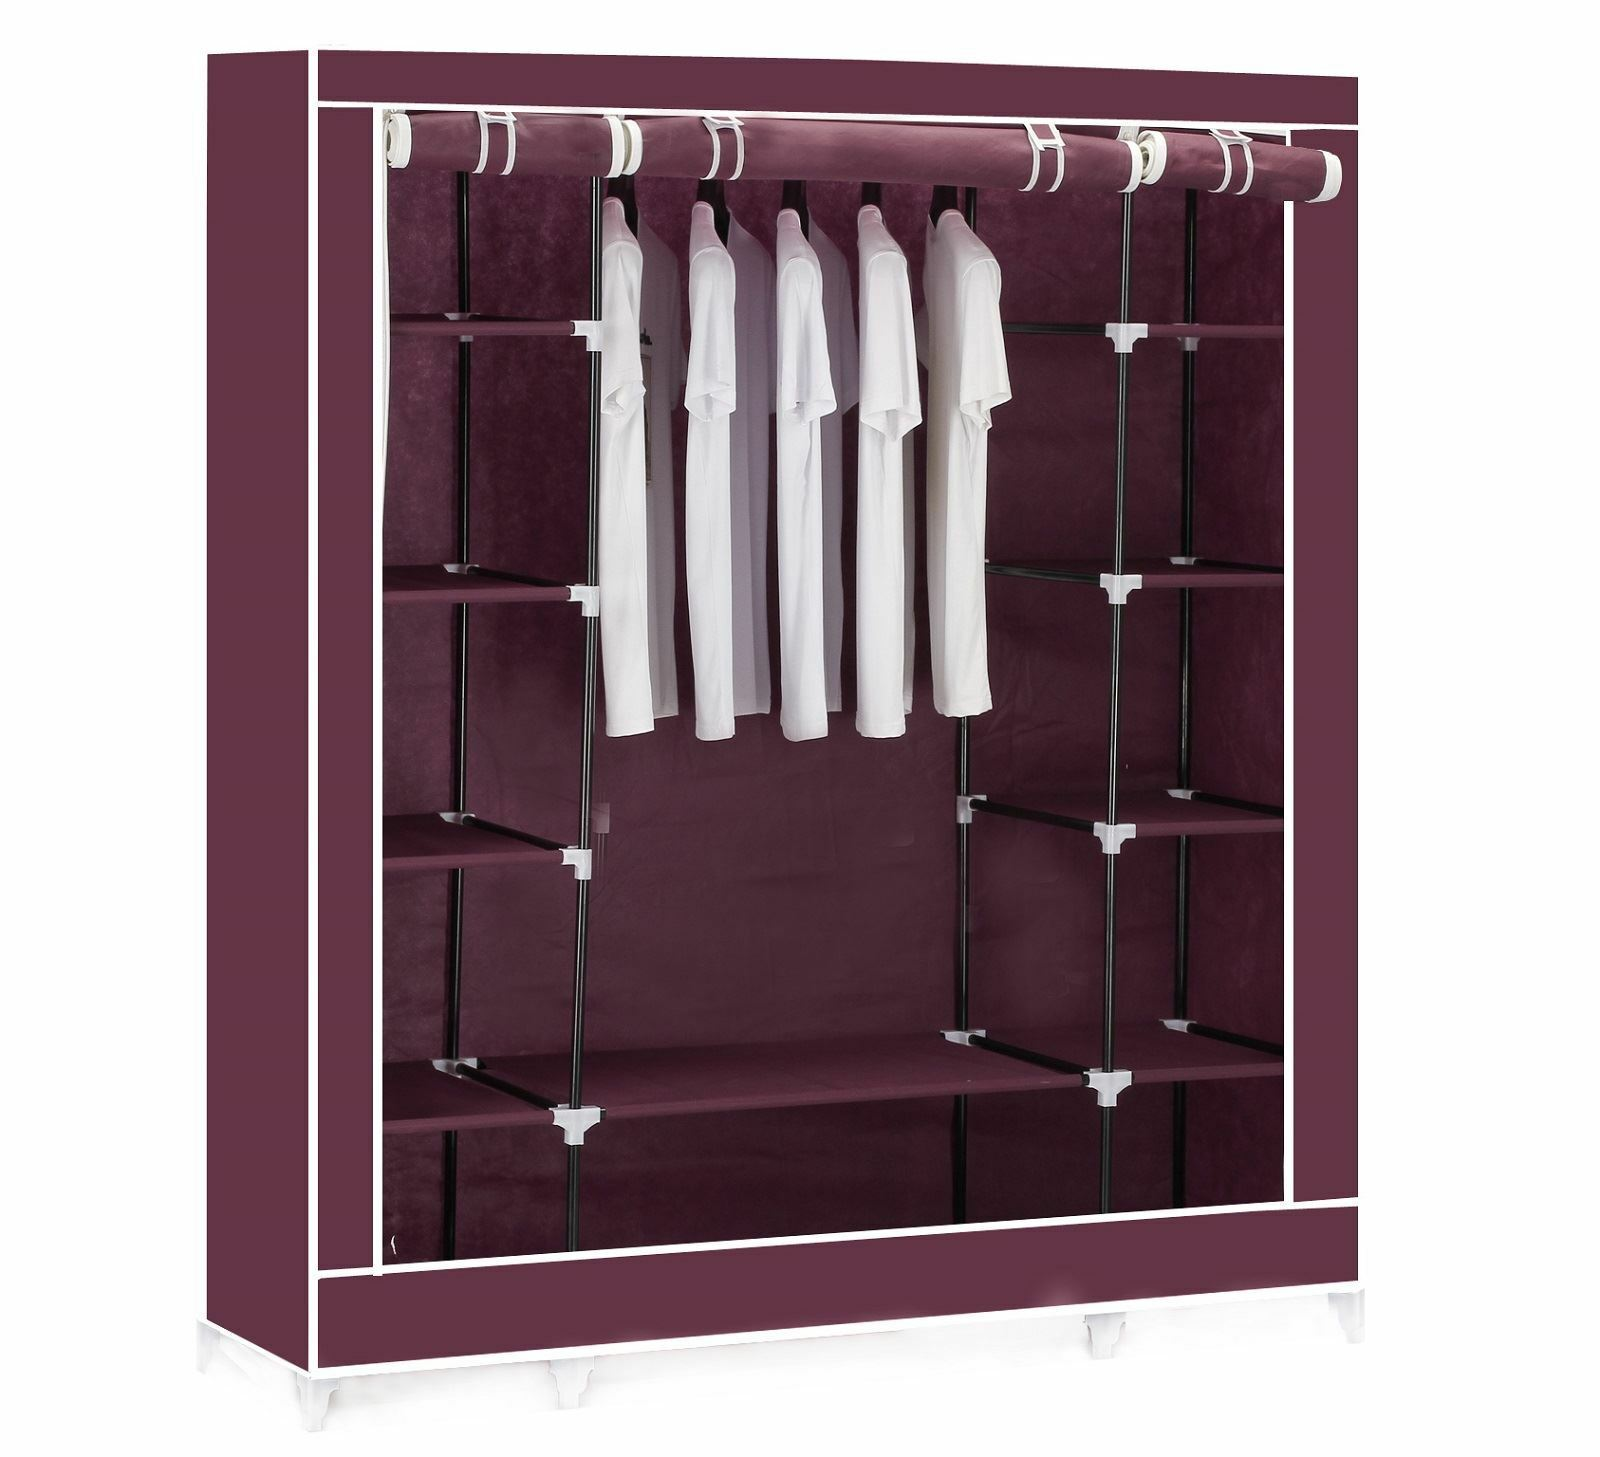 Vinsani Triple Canvas Clothes Cupboard Hanging Rail With Storage Shelves Red Eur 22 80